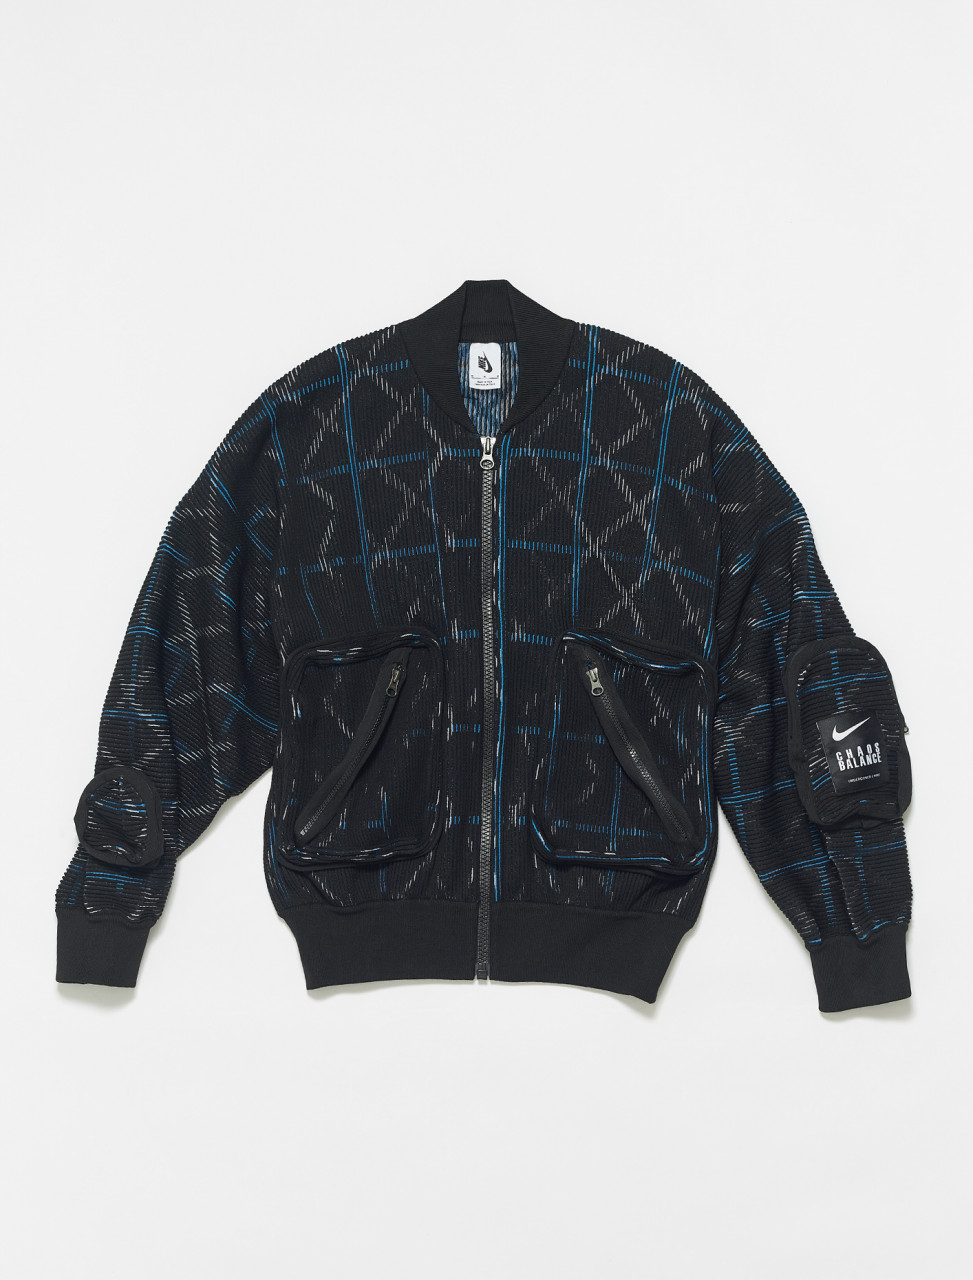 CW8021-010 NIKE X UNDERCOVER KNIT MA 1 BOMBER JACKET IN BLACK